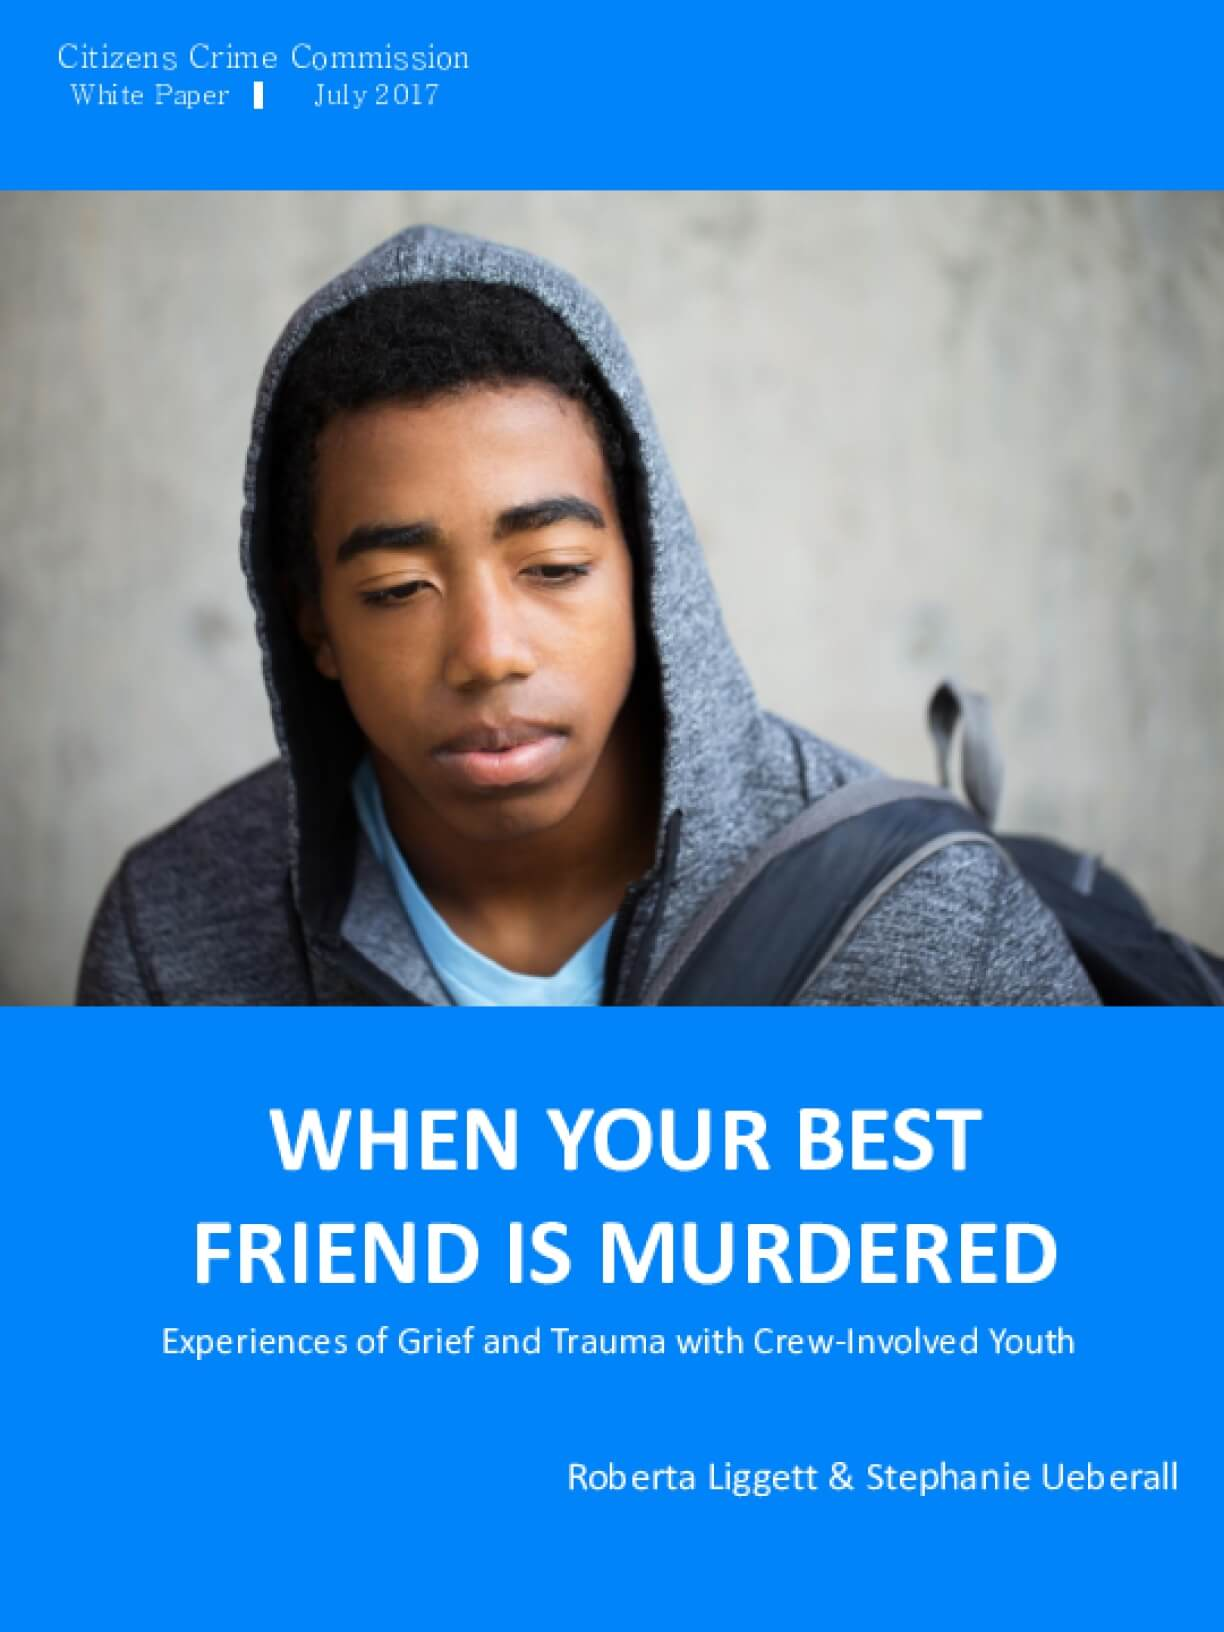 When Your Best Friend Is Murdered: Experiences of Grief and Trauma with Crew-involved Youth